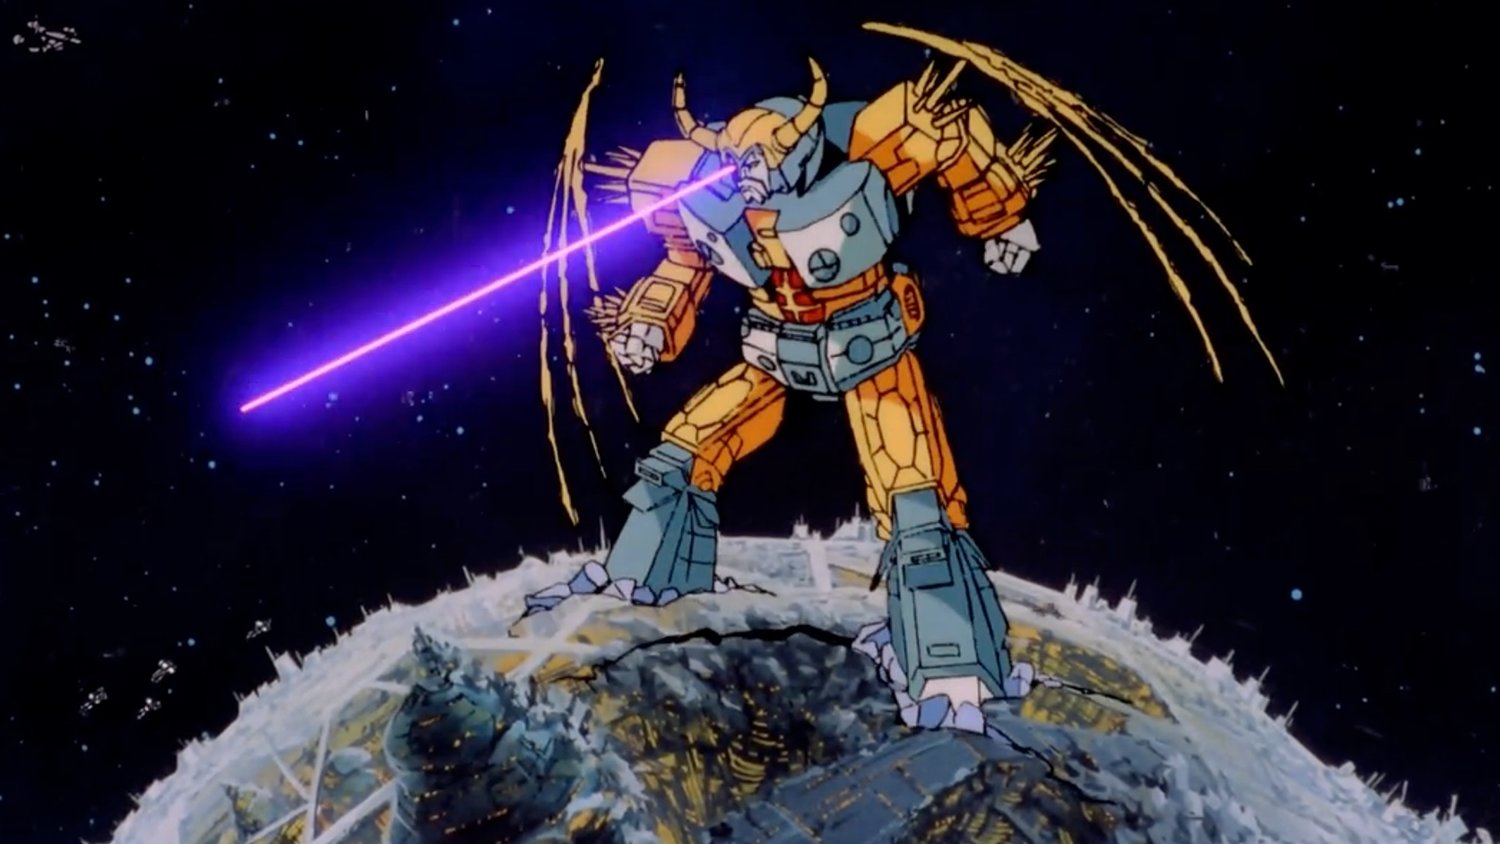 The TRANSFORMERS Film Franchise Will Get a Complete Reboot